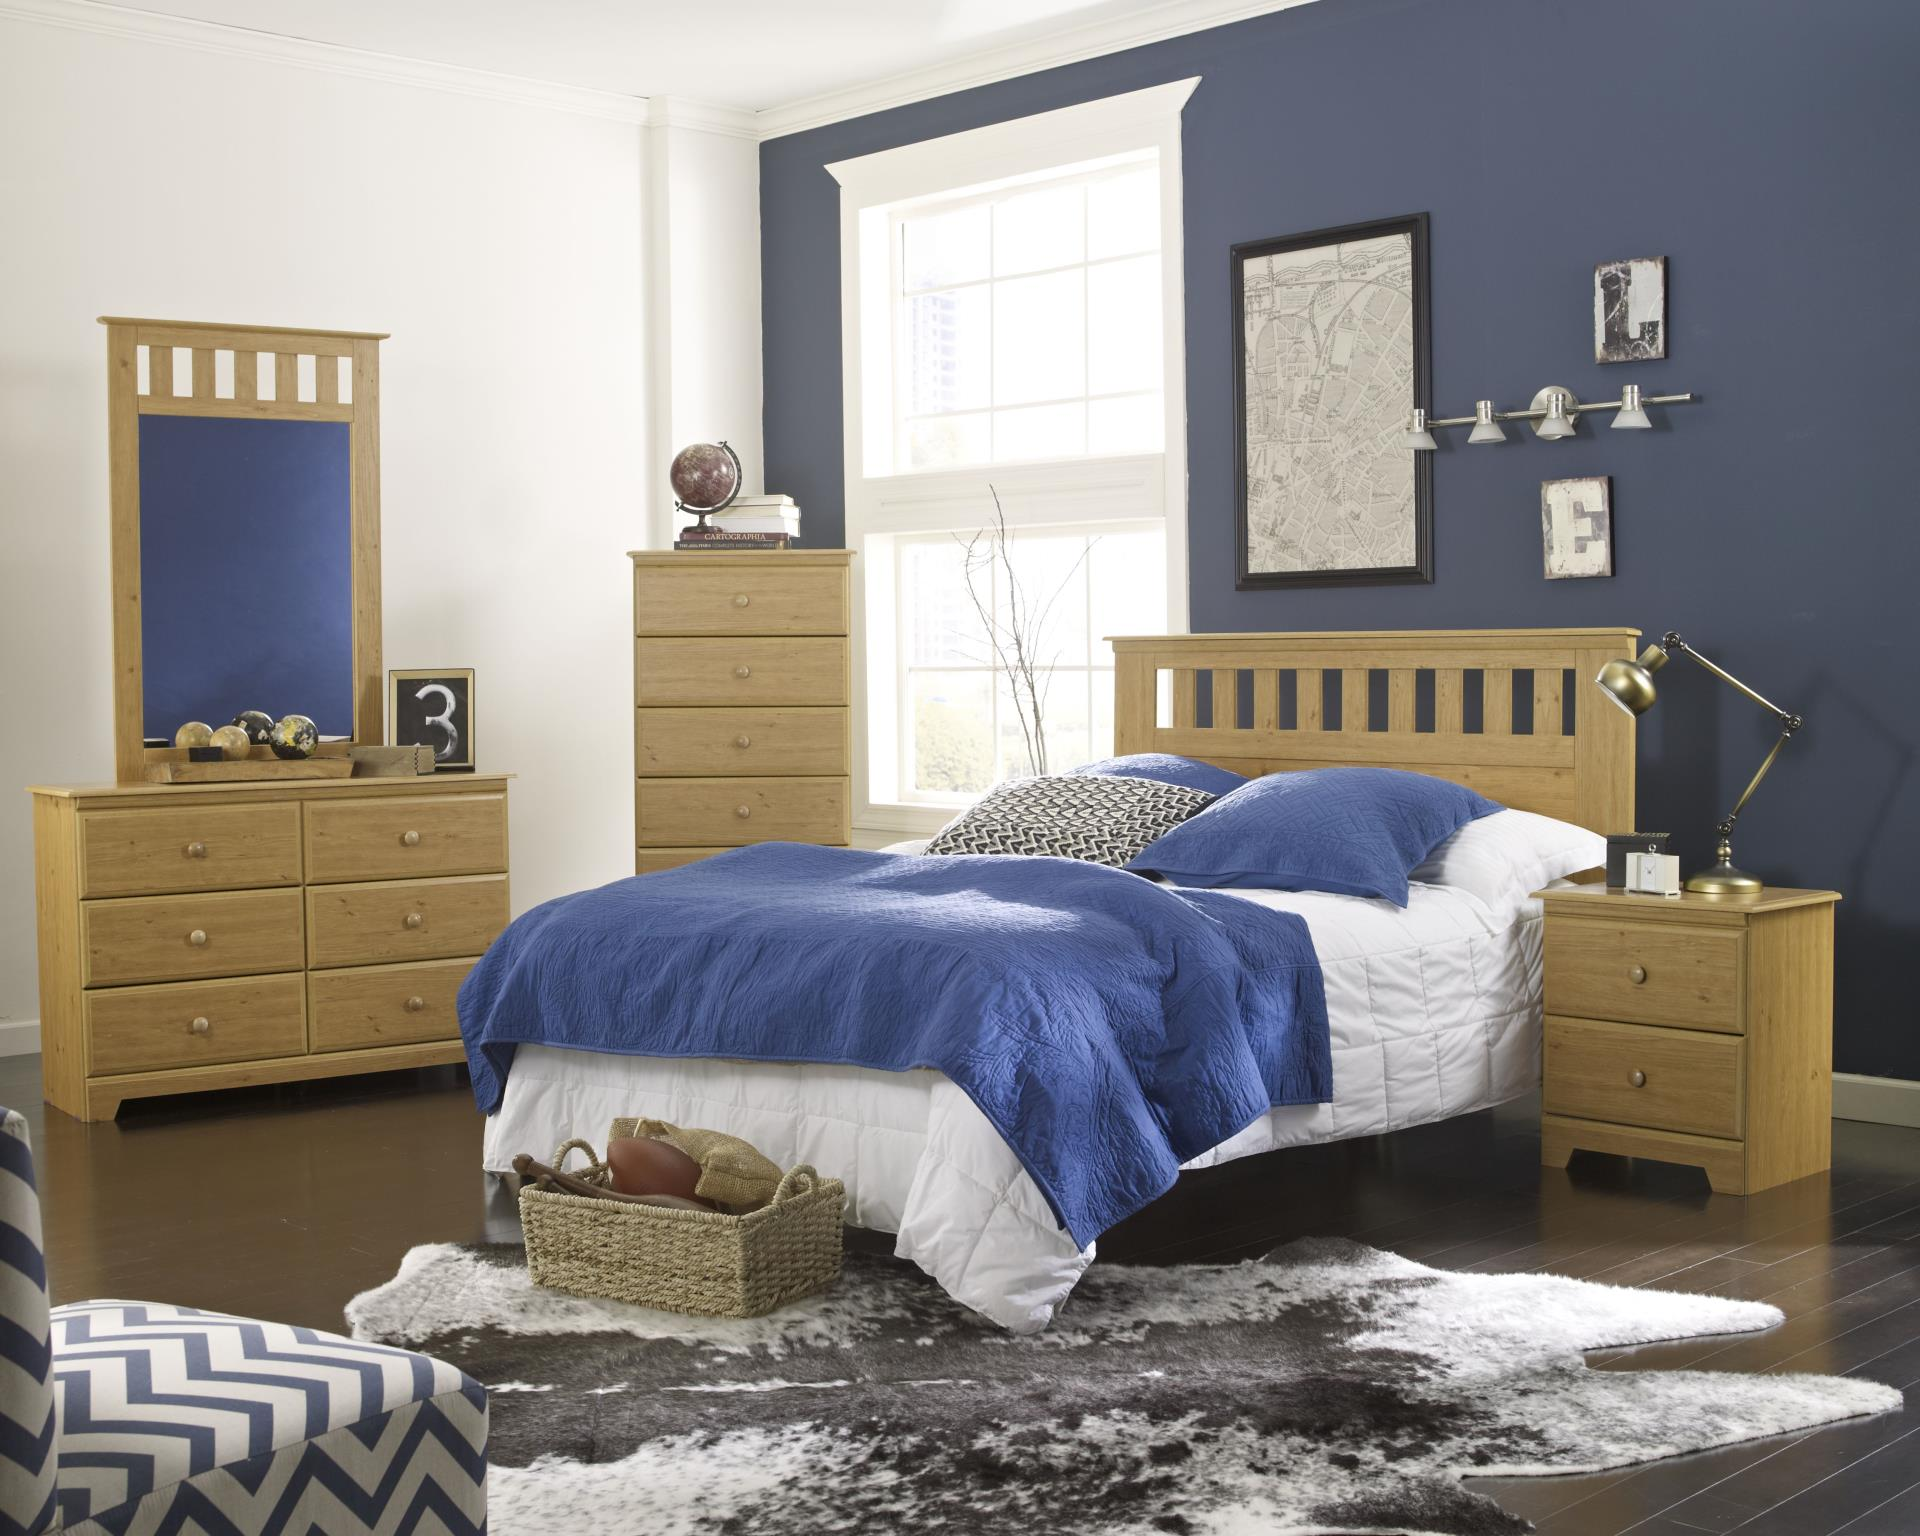 Classic Wood Style Adult Bedroom Set